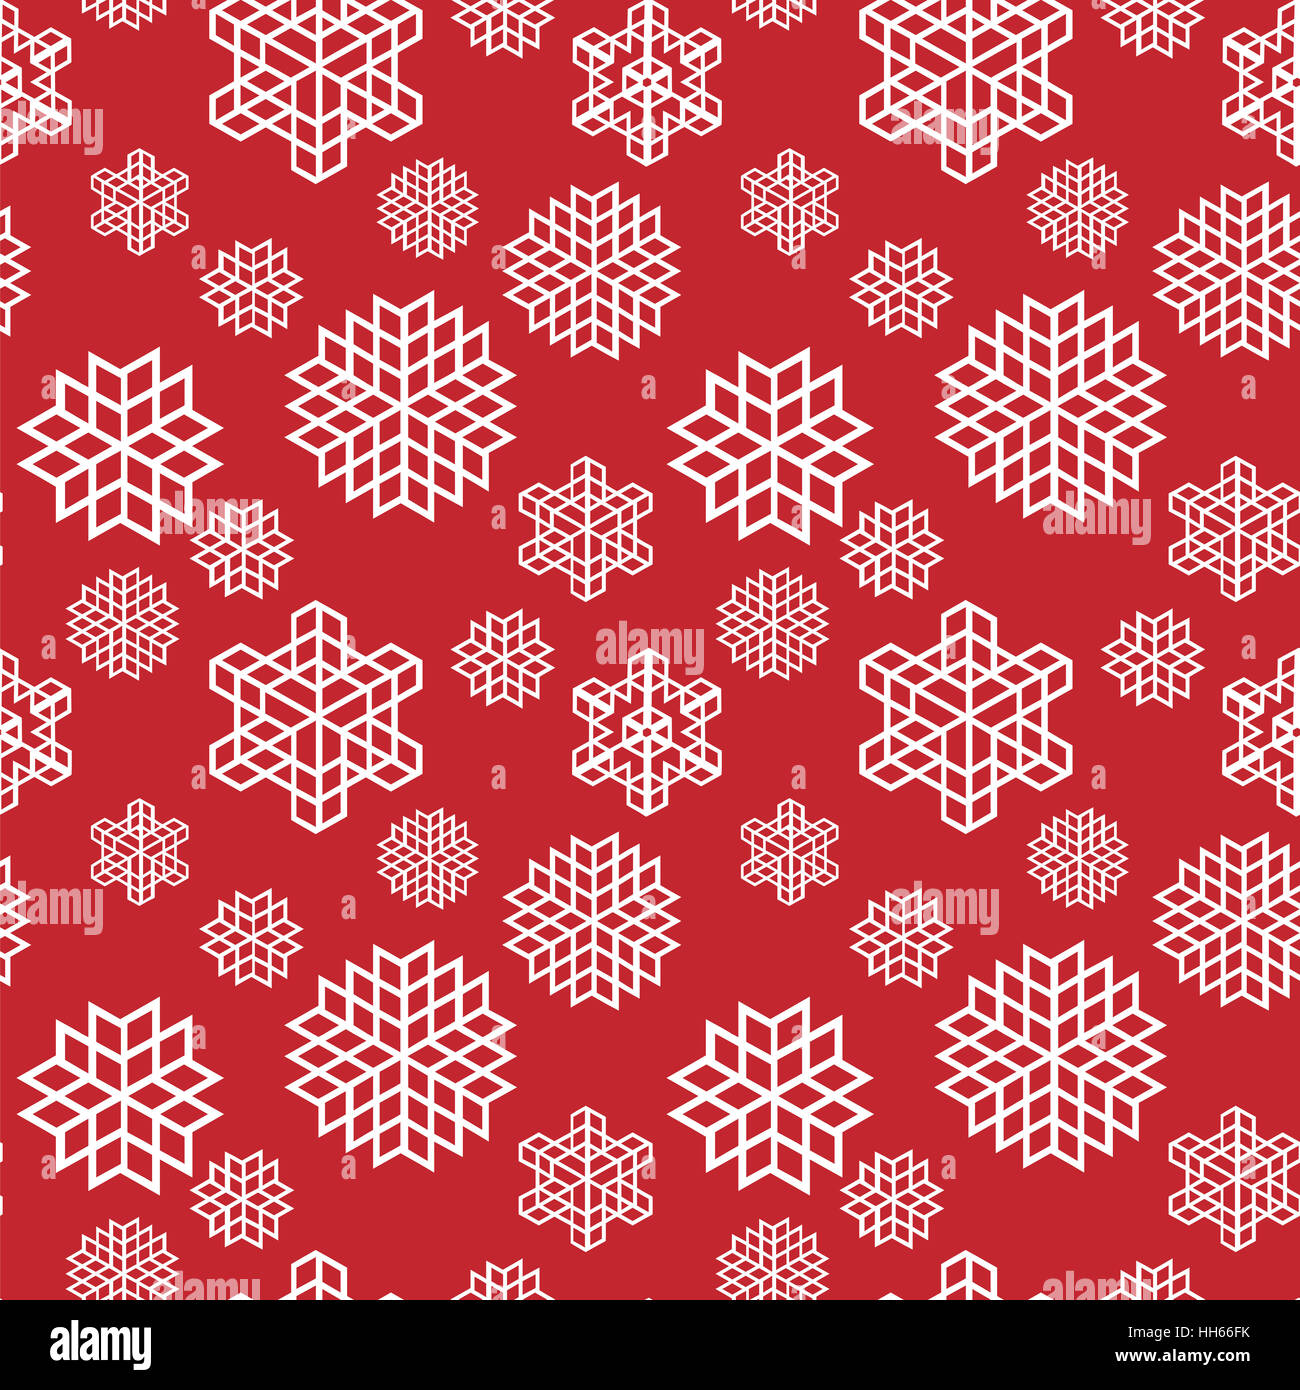 Christmas seamless snowflake retro vector patterns tiling. Endless texture can be used for printing onto fabric - Stock Image